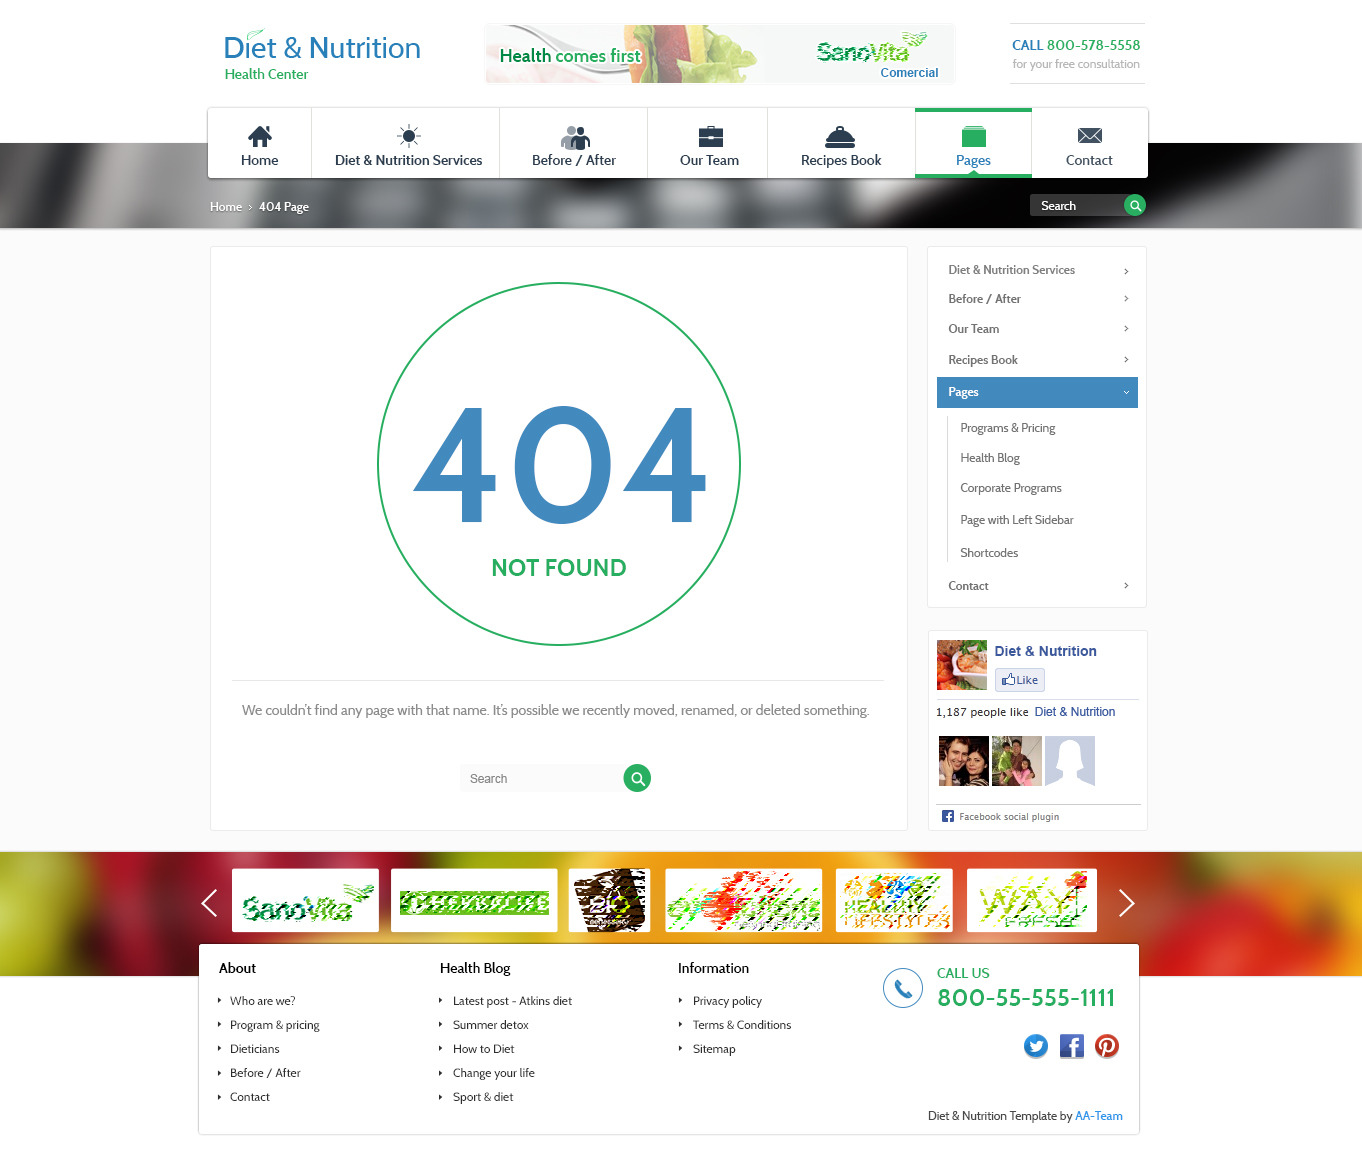 Diet & Nutrition Health Center - Responsive HTML5